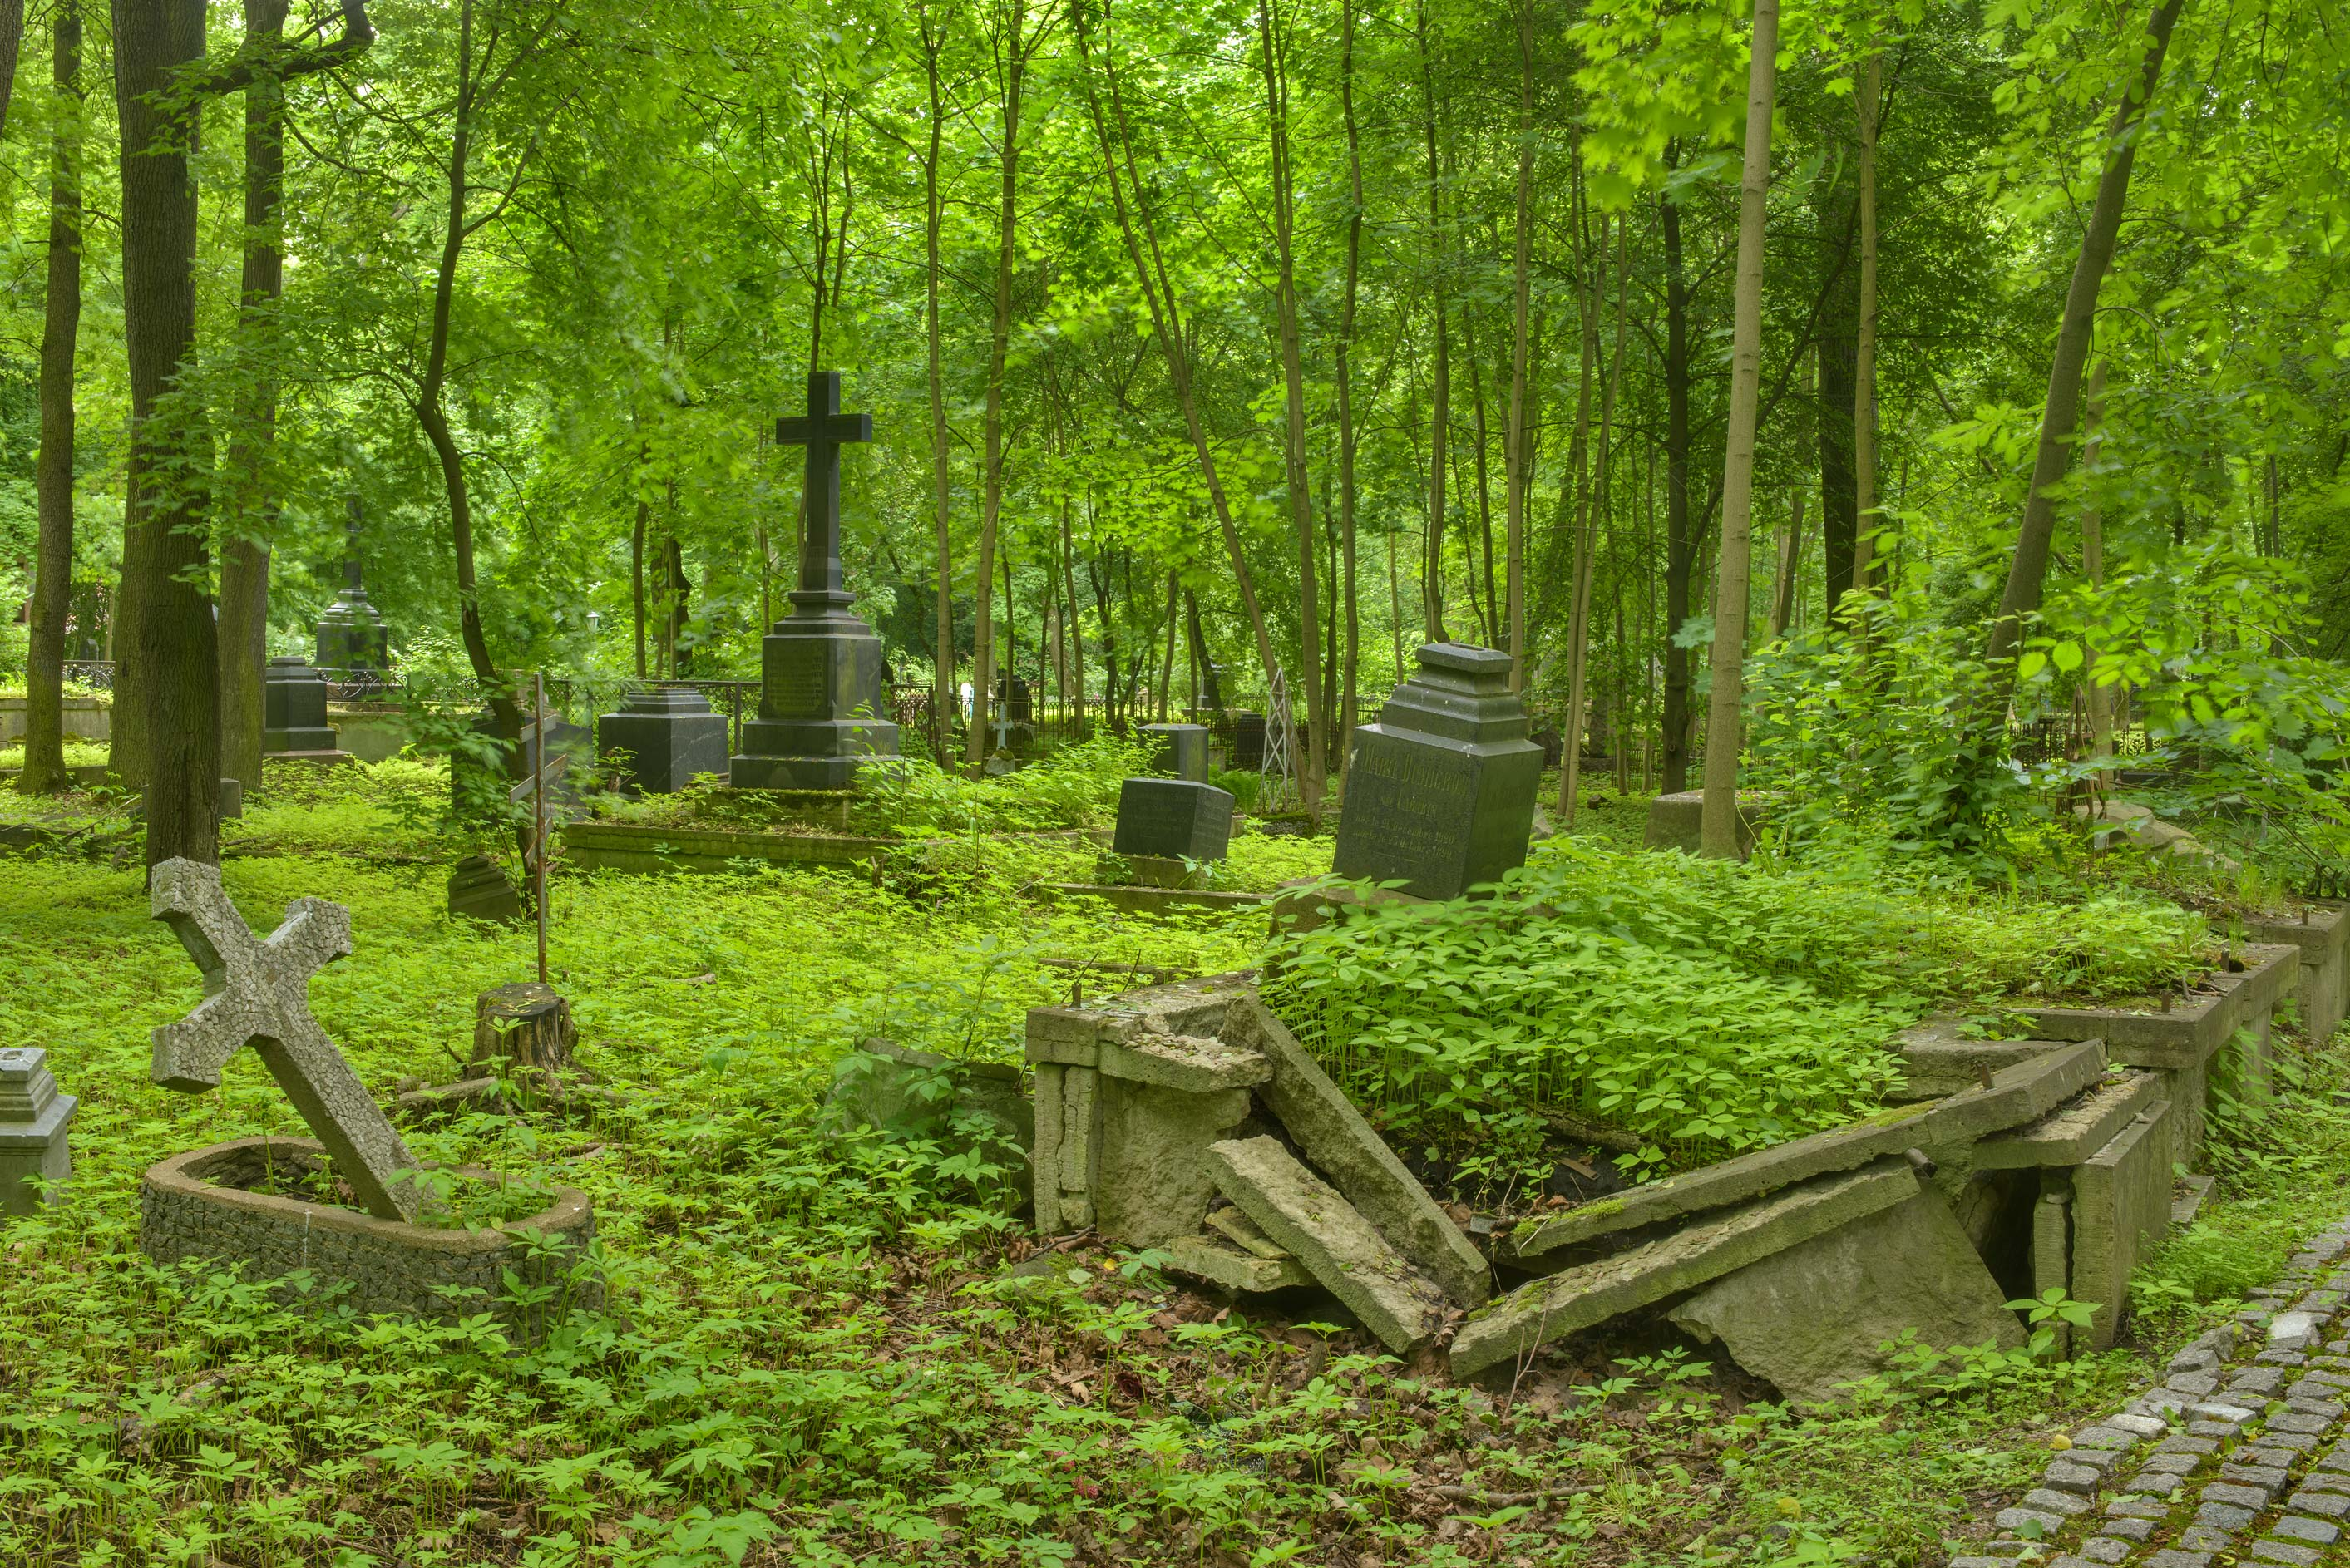 Tombs and weeds in Smolenskoe Cemetery of Vasilievsliy Island. St.Petersburg, Russia